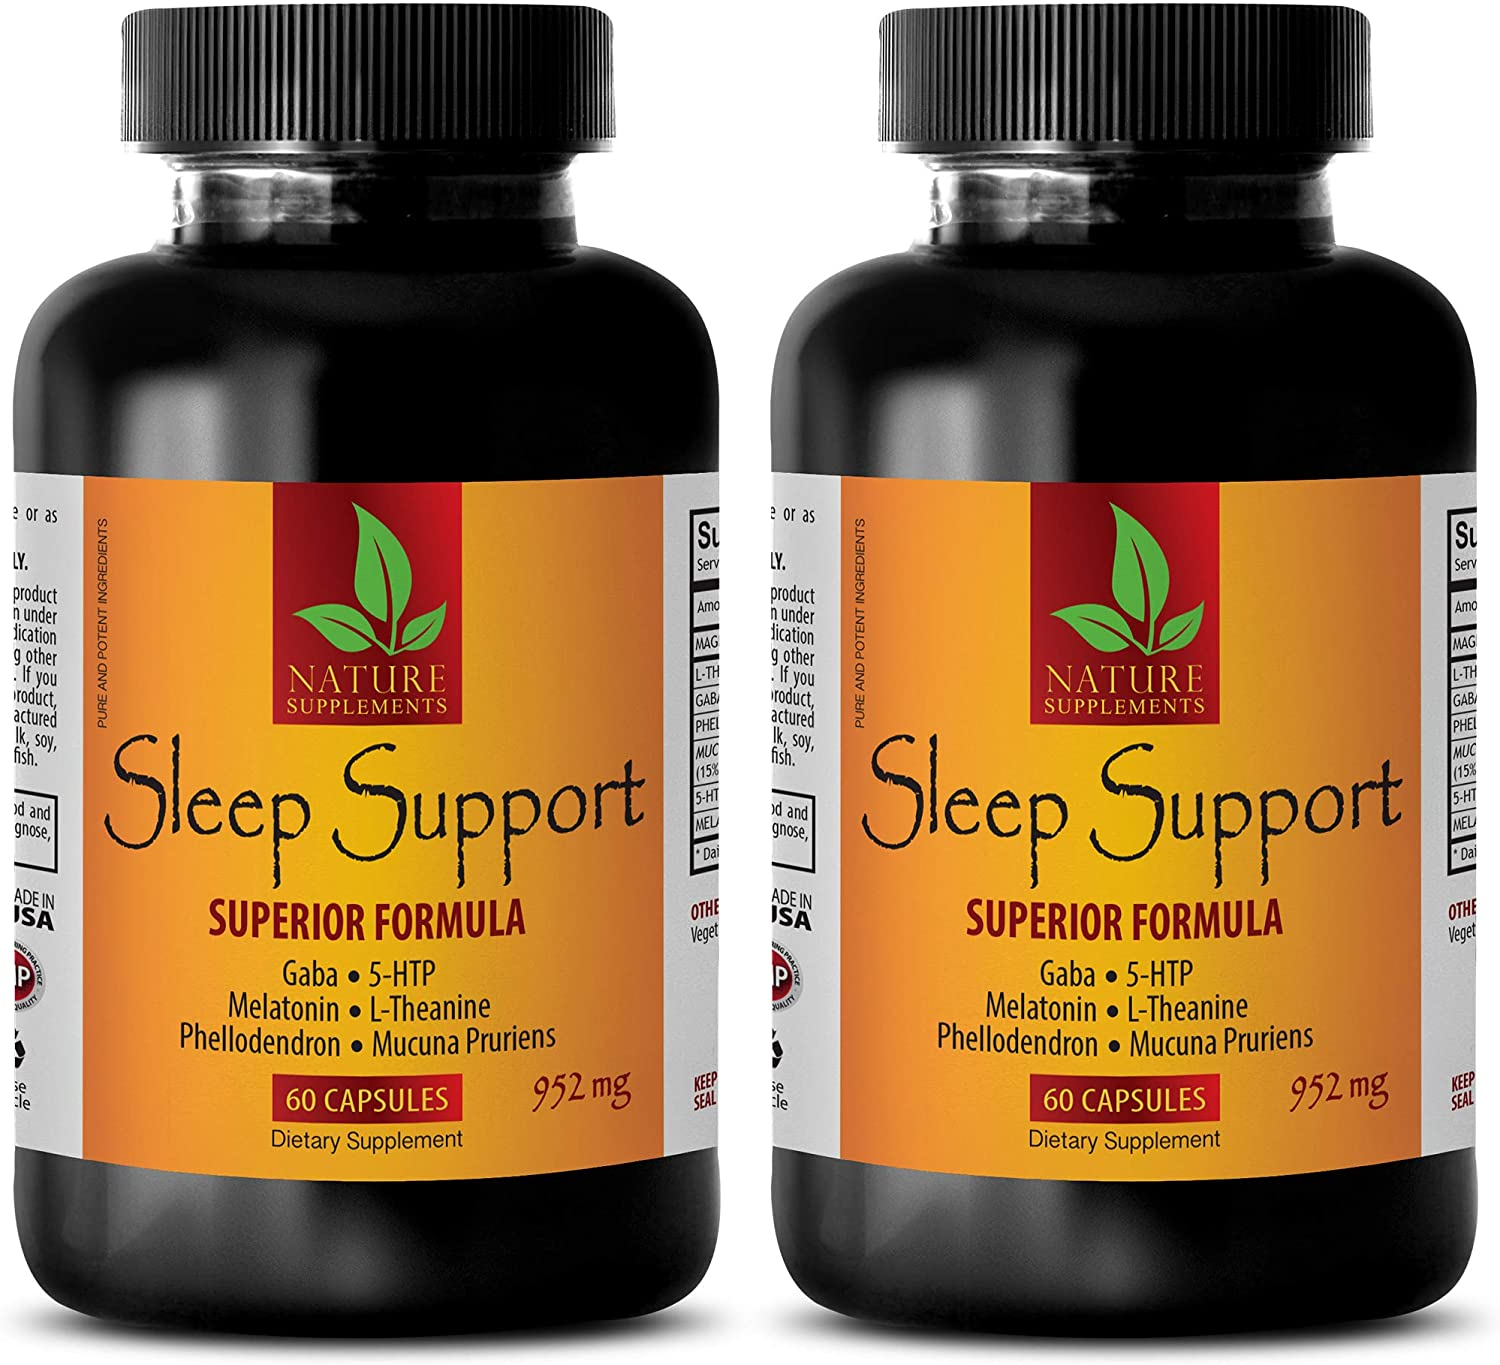 Max 66% OFF Energy Supplement All Natural - Sleep Support Superior 9 Formula Fashionable